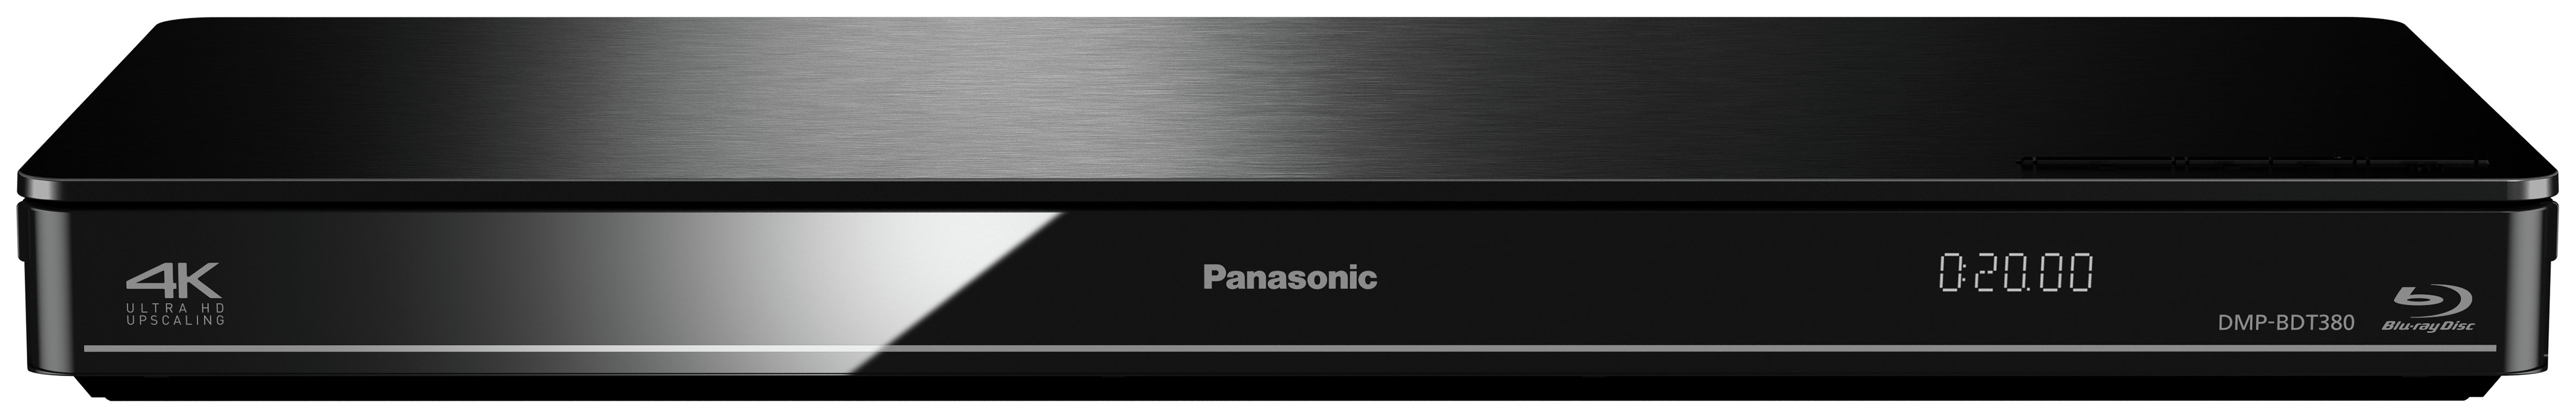 Image of Panasonic - BDT380 - Smart Blu-ray Player With 4K Upscaling.